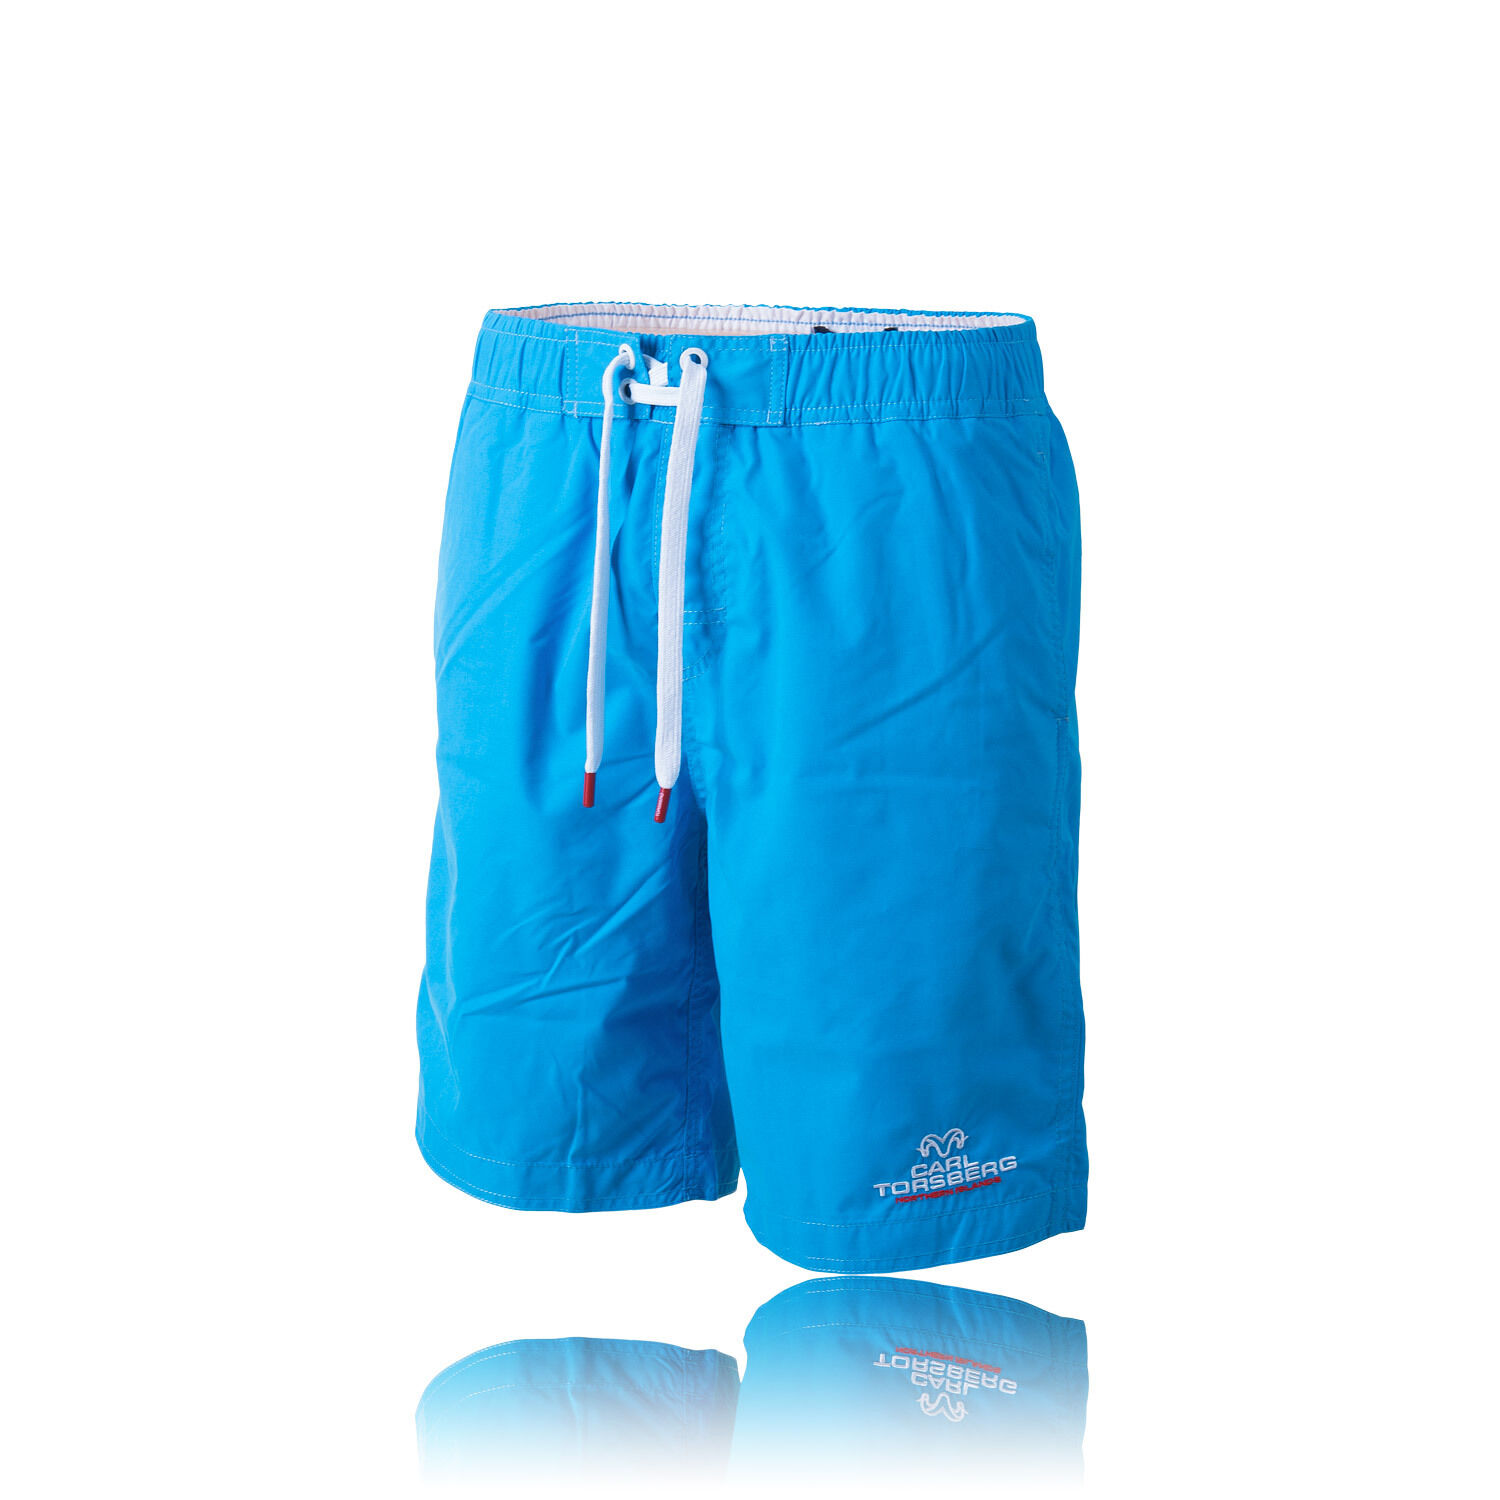 CARL TORSBERG® West Bay Badeshort  | Adoptieren